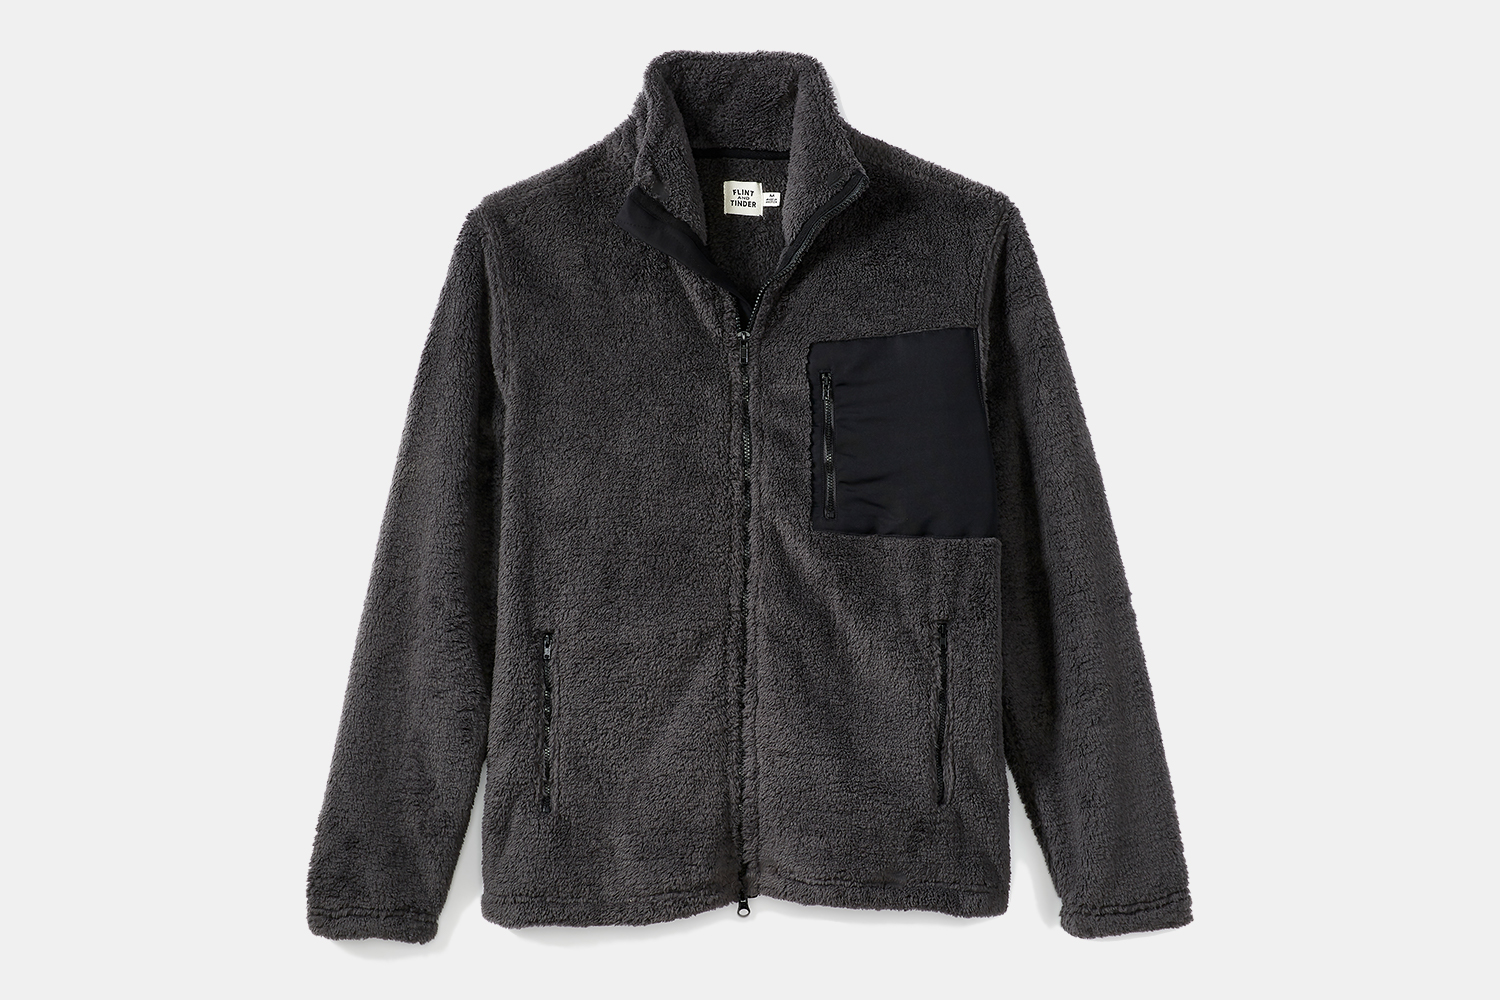 Flint and Tinder Men's Sherpa Full Zip Jacket